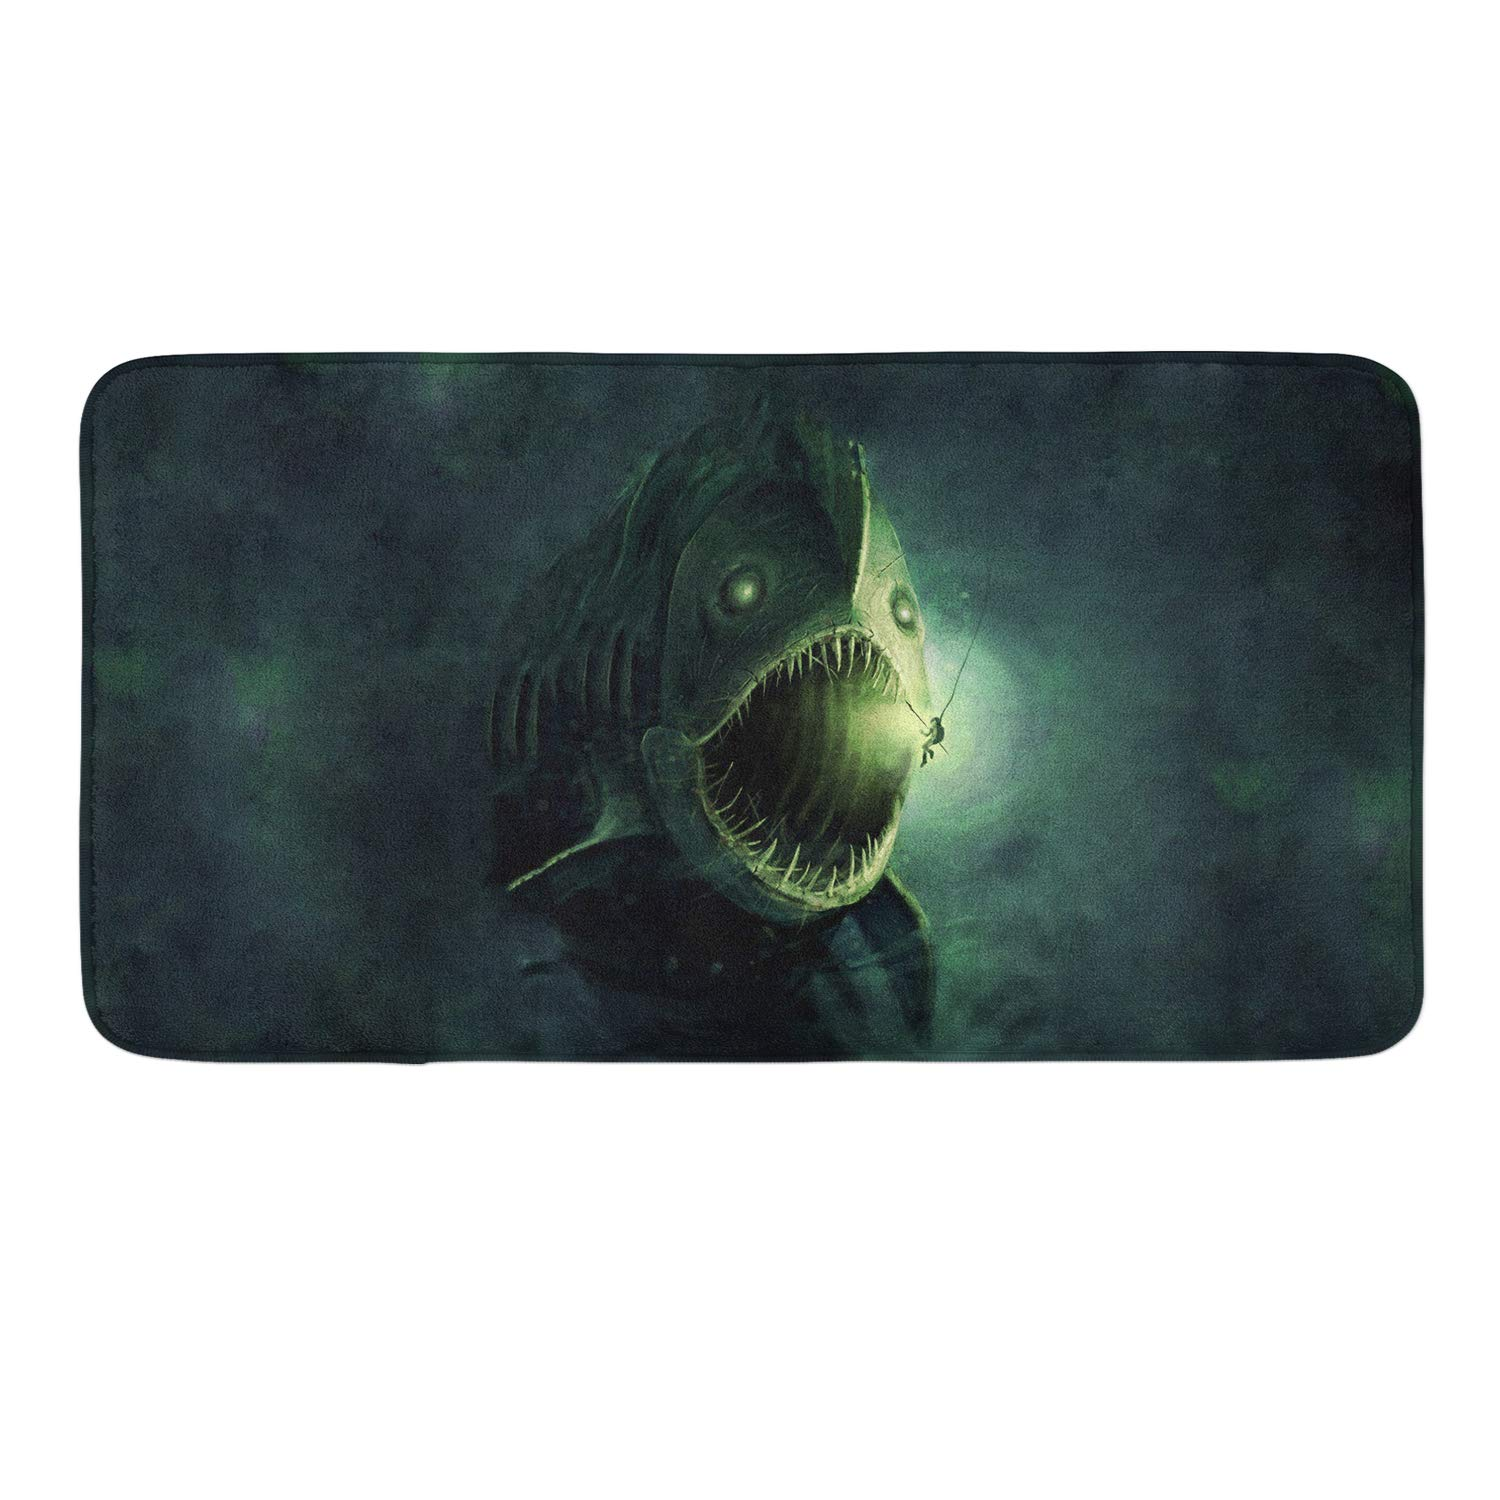 Shark Fish Memory Foam Bath Rugs Kitchen Mat Anti-Slip Bottom Doormat Rug Carpet, Home Decor Shower Mat Bathtub Rug - 18 x 36